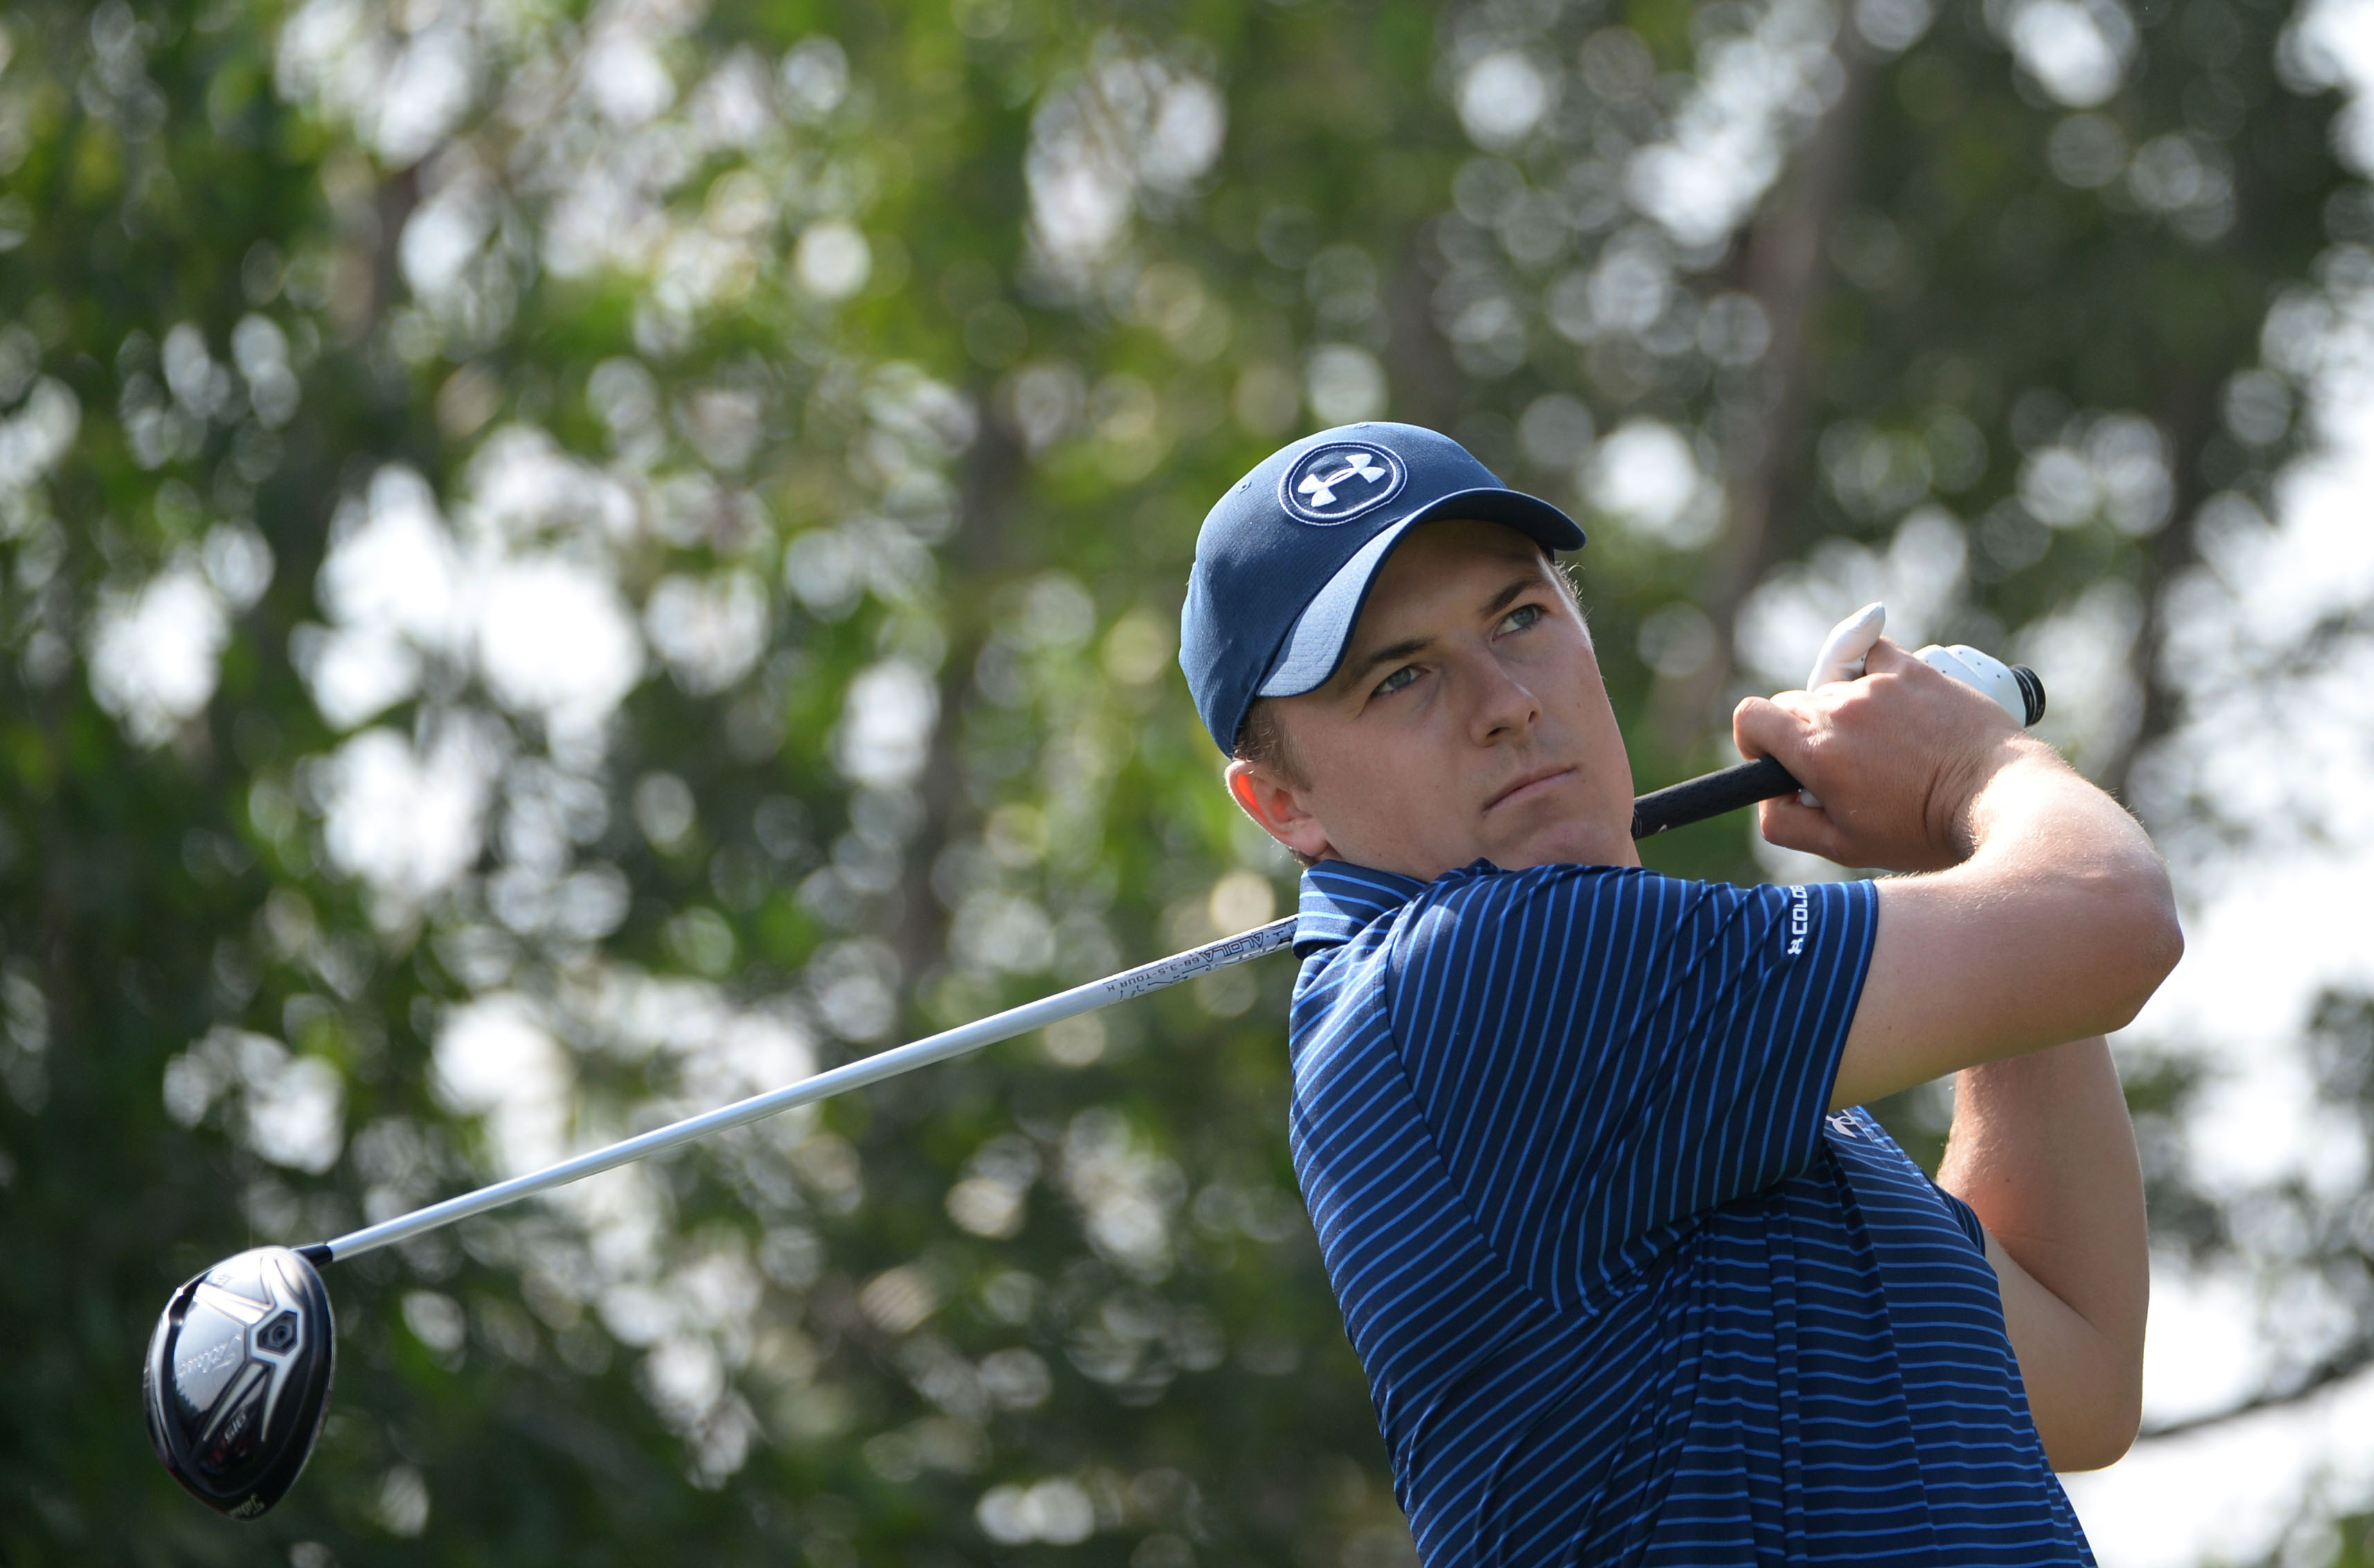 Jordan Spieth of the United States, the world number one, tees off at the 17th hole during the round two of the fog-delayed Abu Dhabi Golf Championship in Abu Dhabi, United Arab Emirates, Saturday, Jan. 23, 2016. (AP Photo/Martin